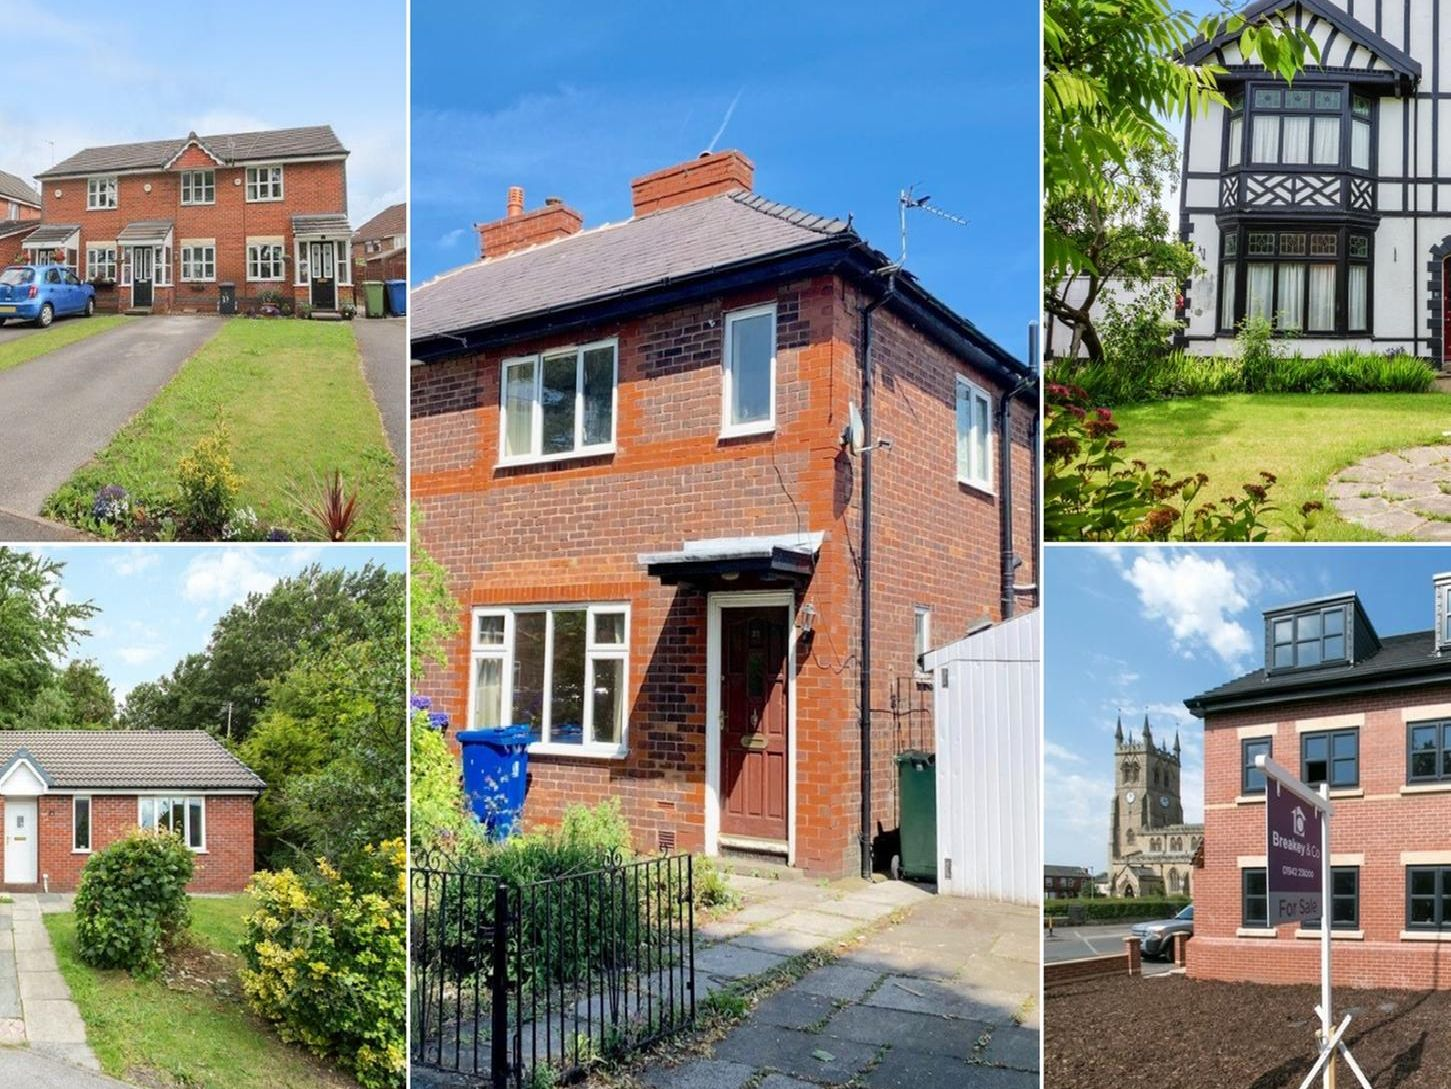 These are the 10 most viewed properties in Wigan according to Zoopla